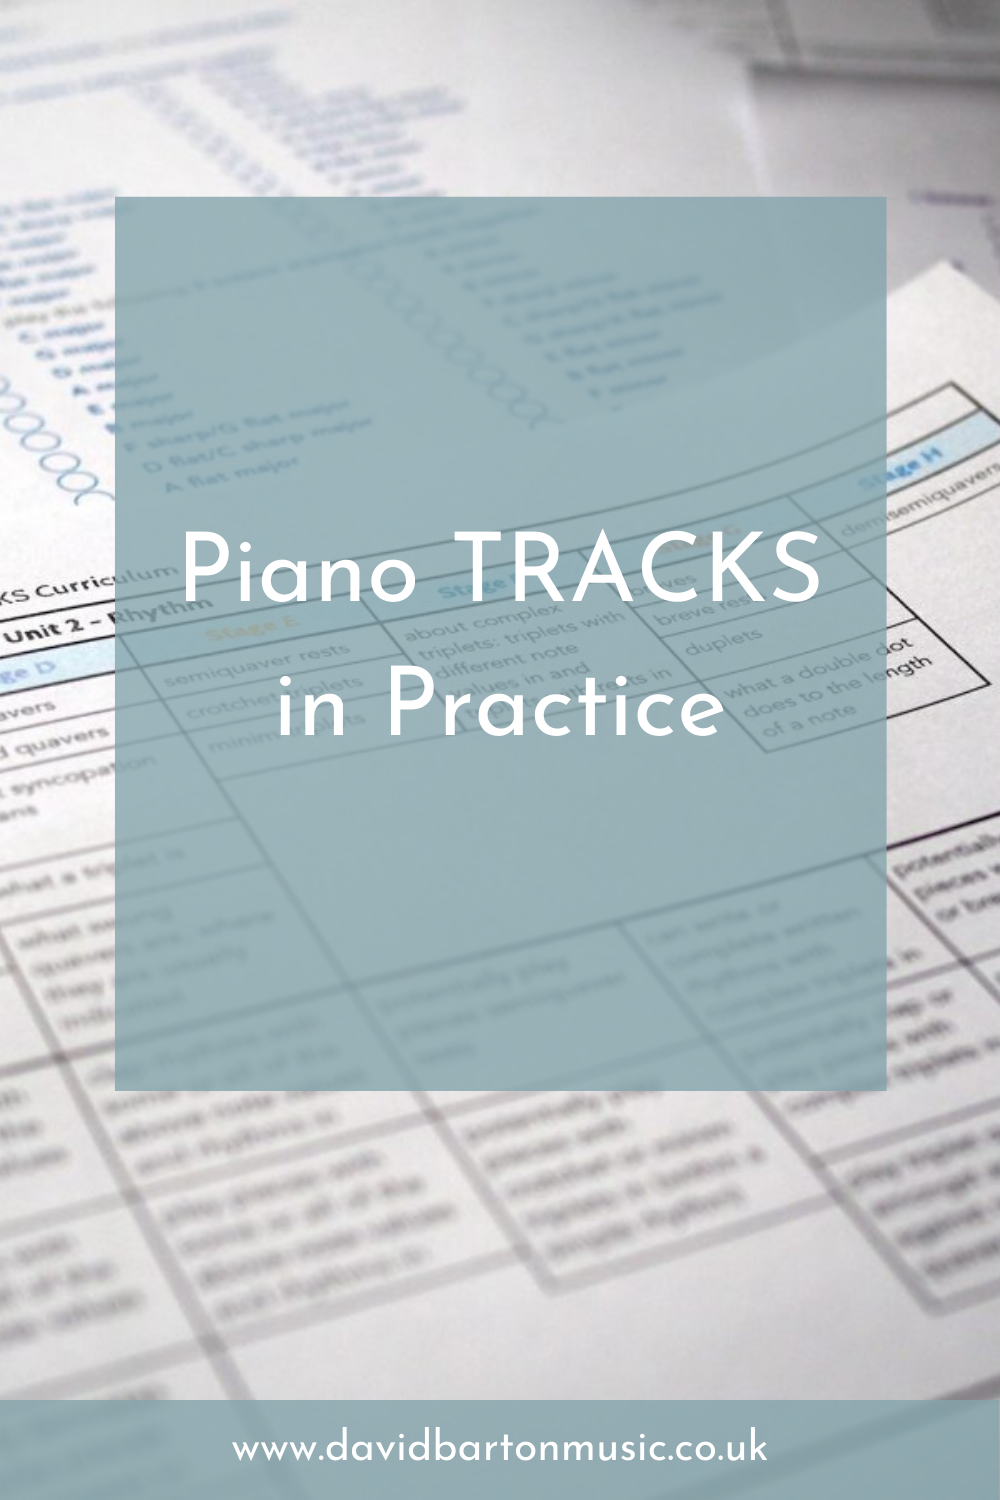 Piano TRACKS in Practice - Pinterest graphic